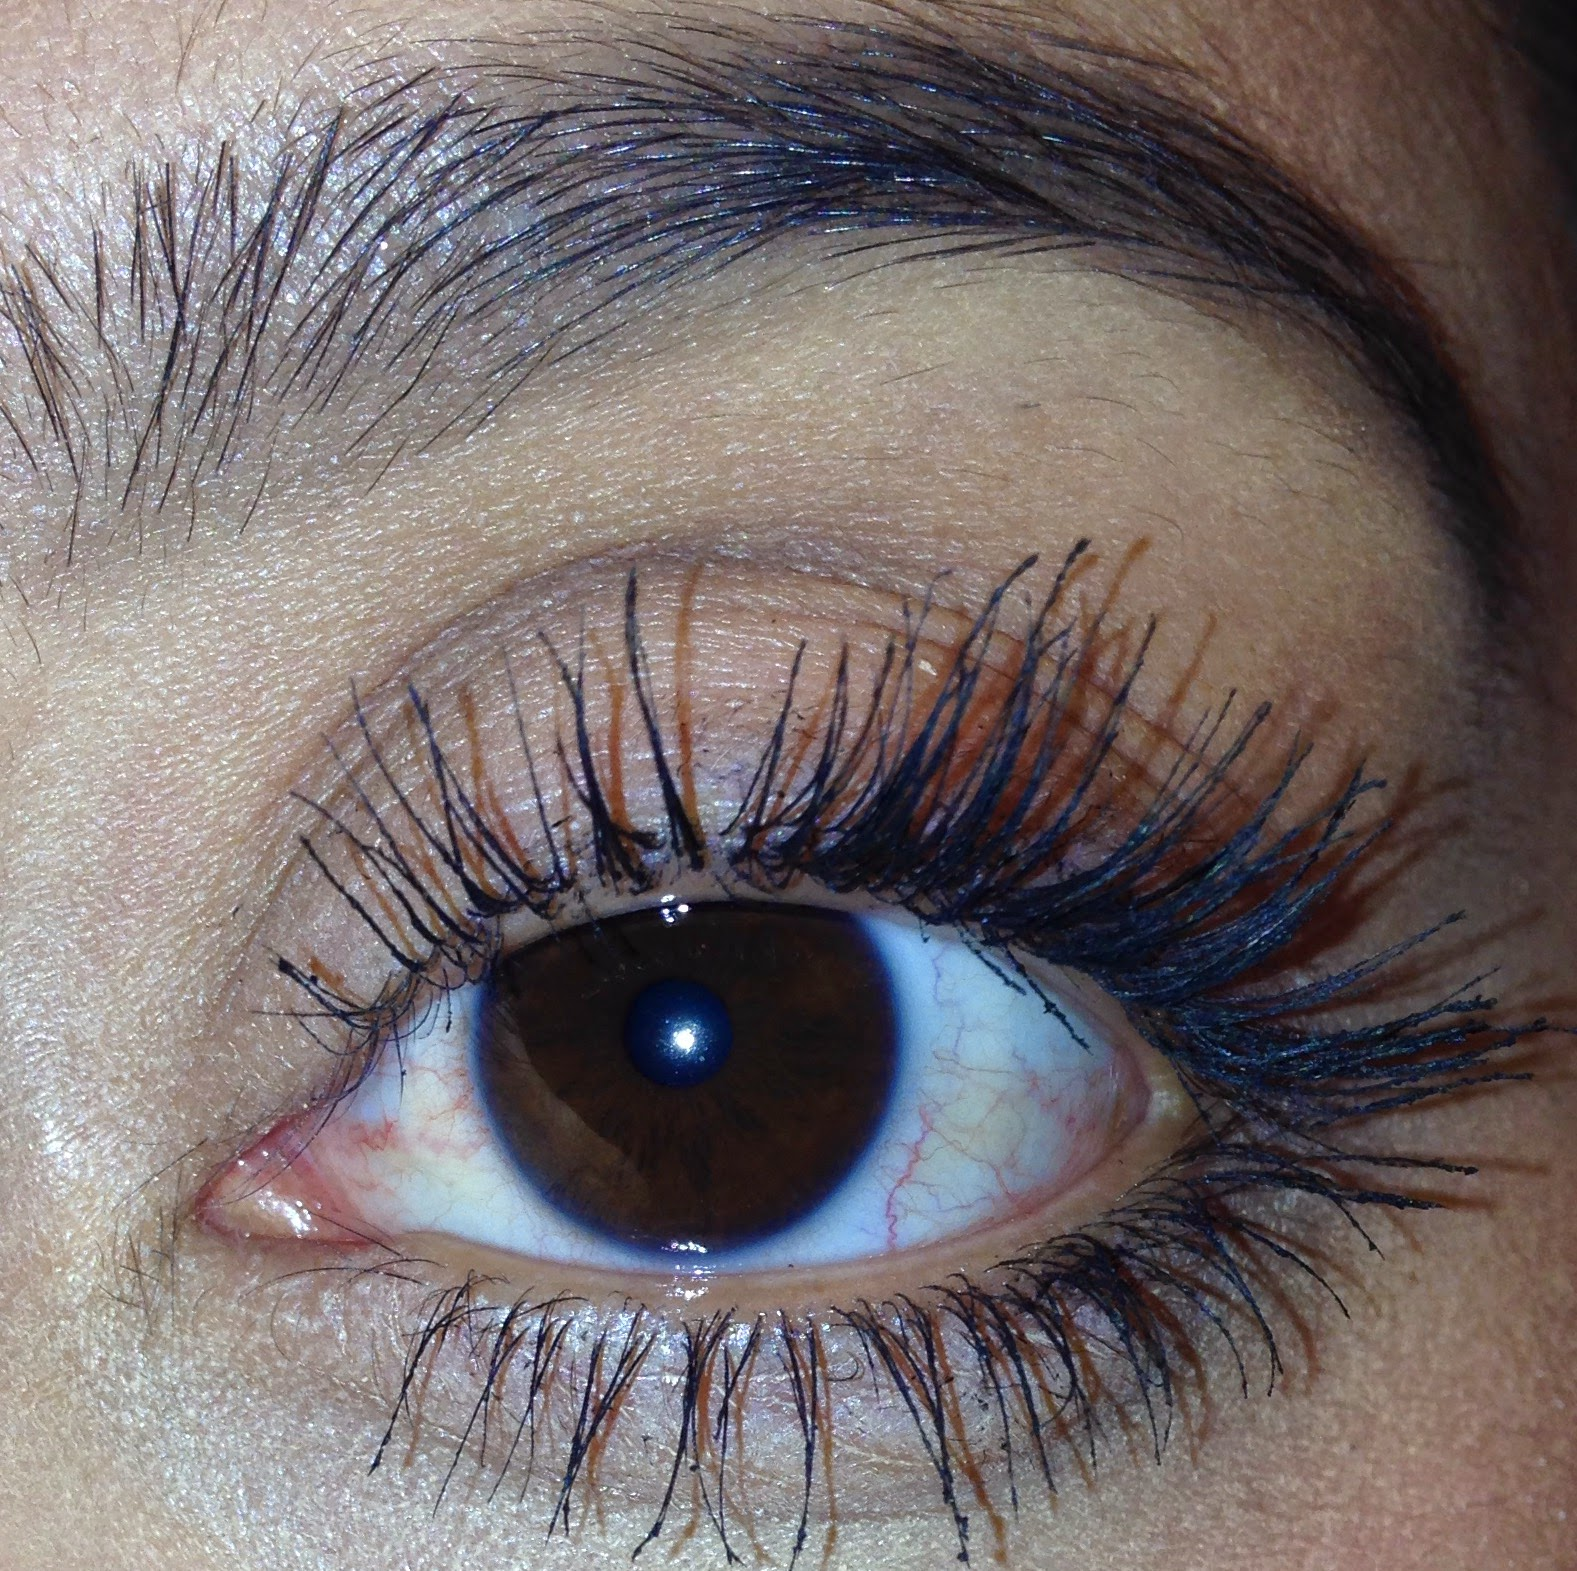 Mascara, baby powder and another coat of mascara